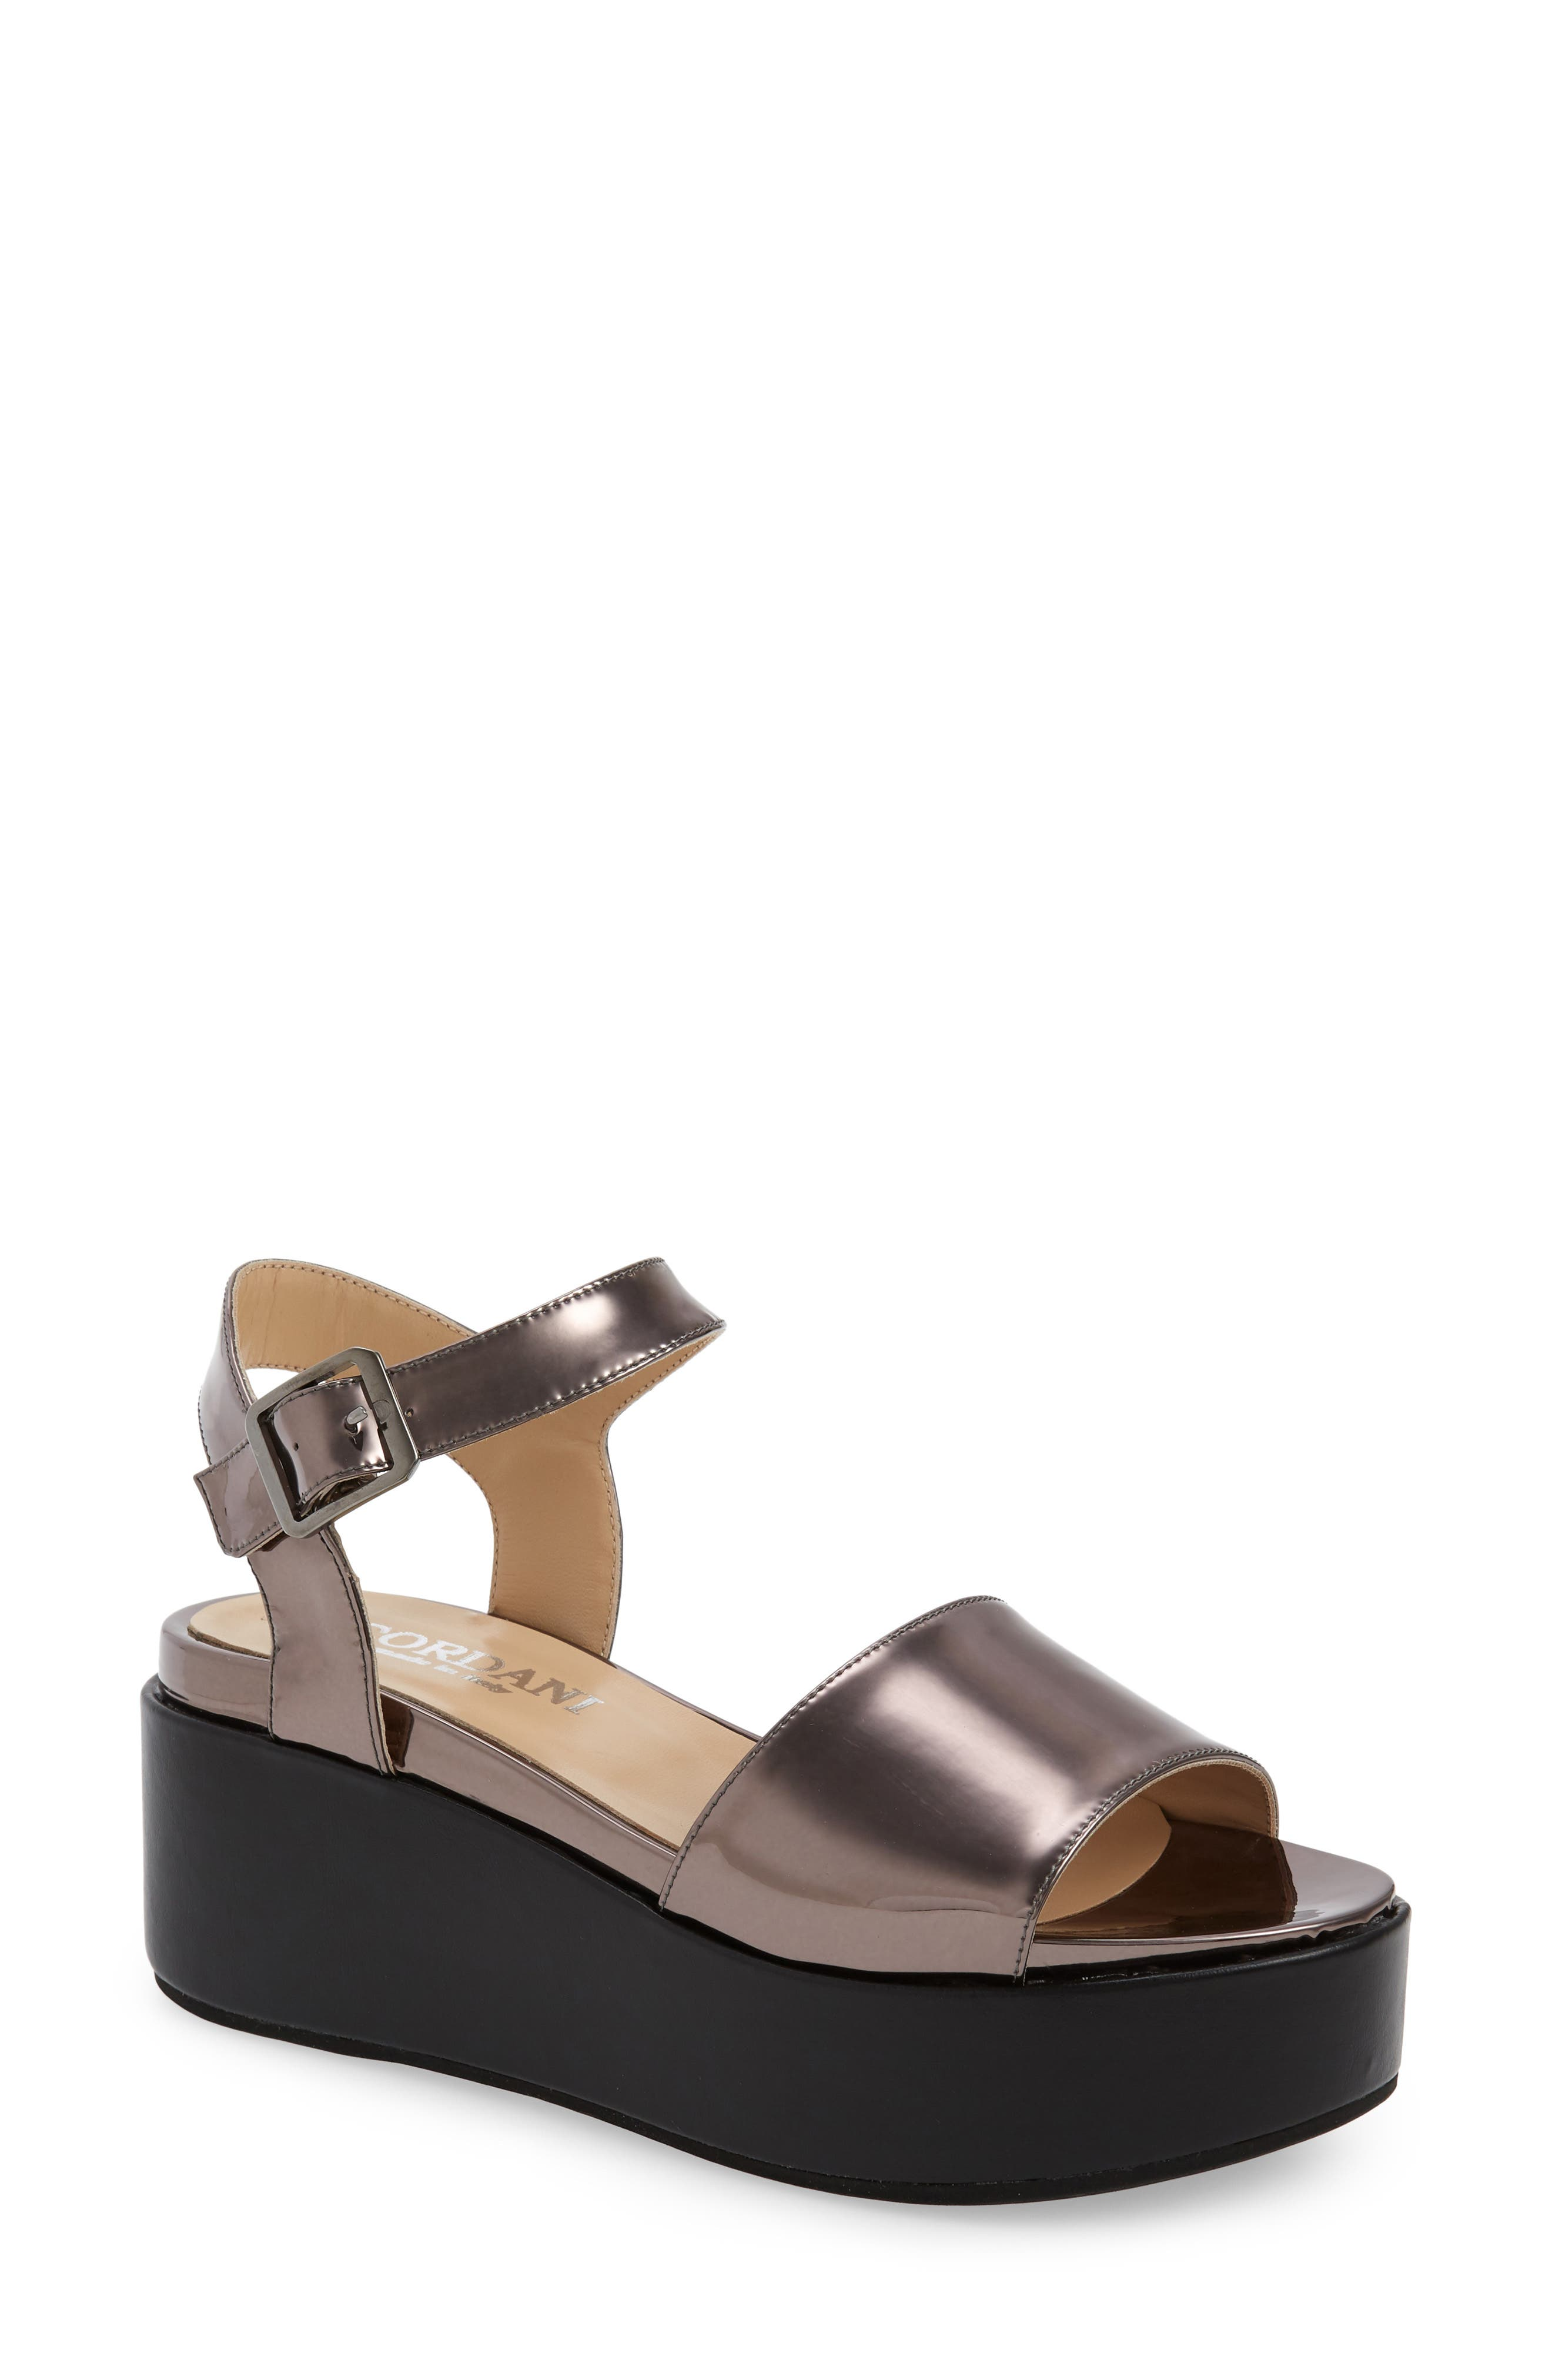 Elevate every step you take in this striking platform sandal crafted with a cushy footbed and a rocker sole that provides even, natural support as you walk. Style Name: Cordani Karrie Platform Sandal (Women). Style Number: 5789048 1. Available in stores.